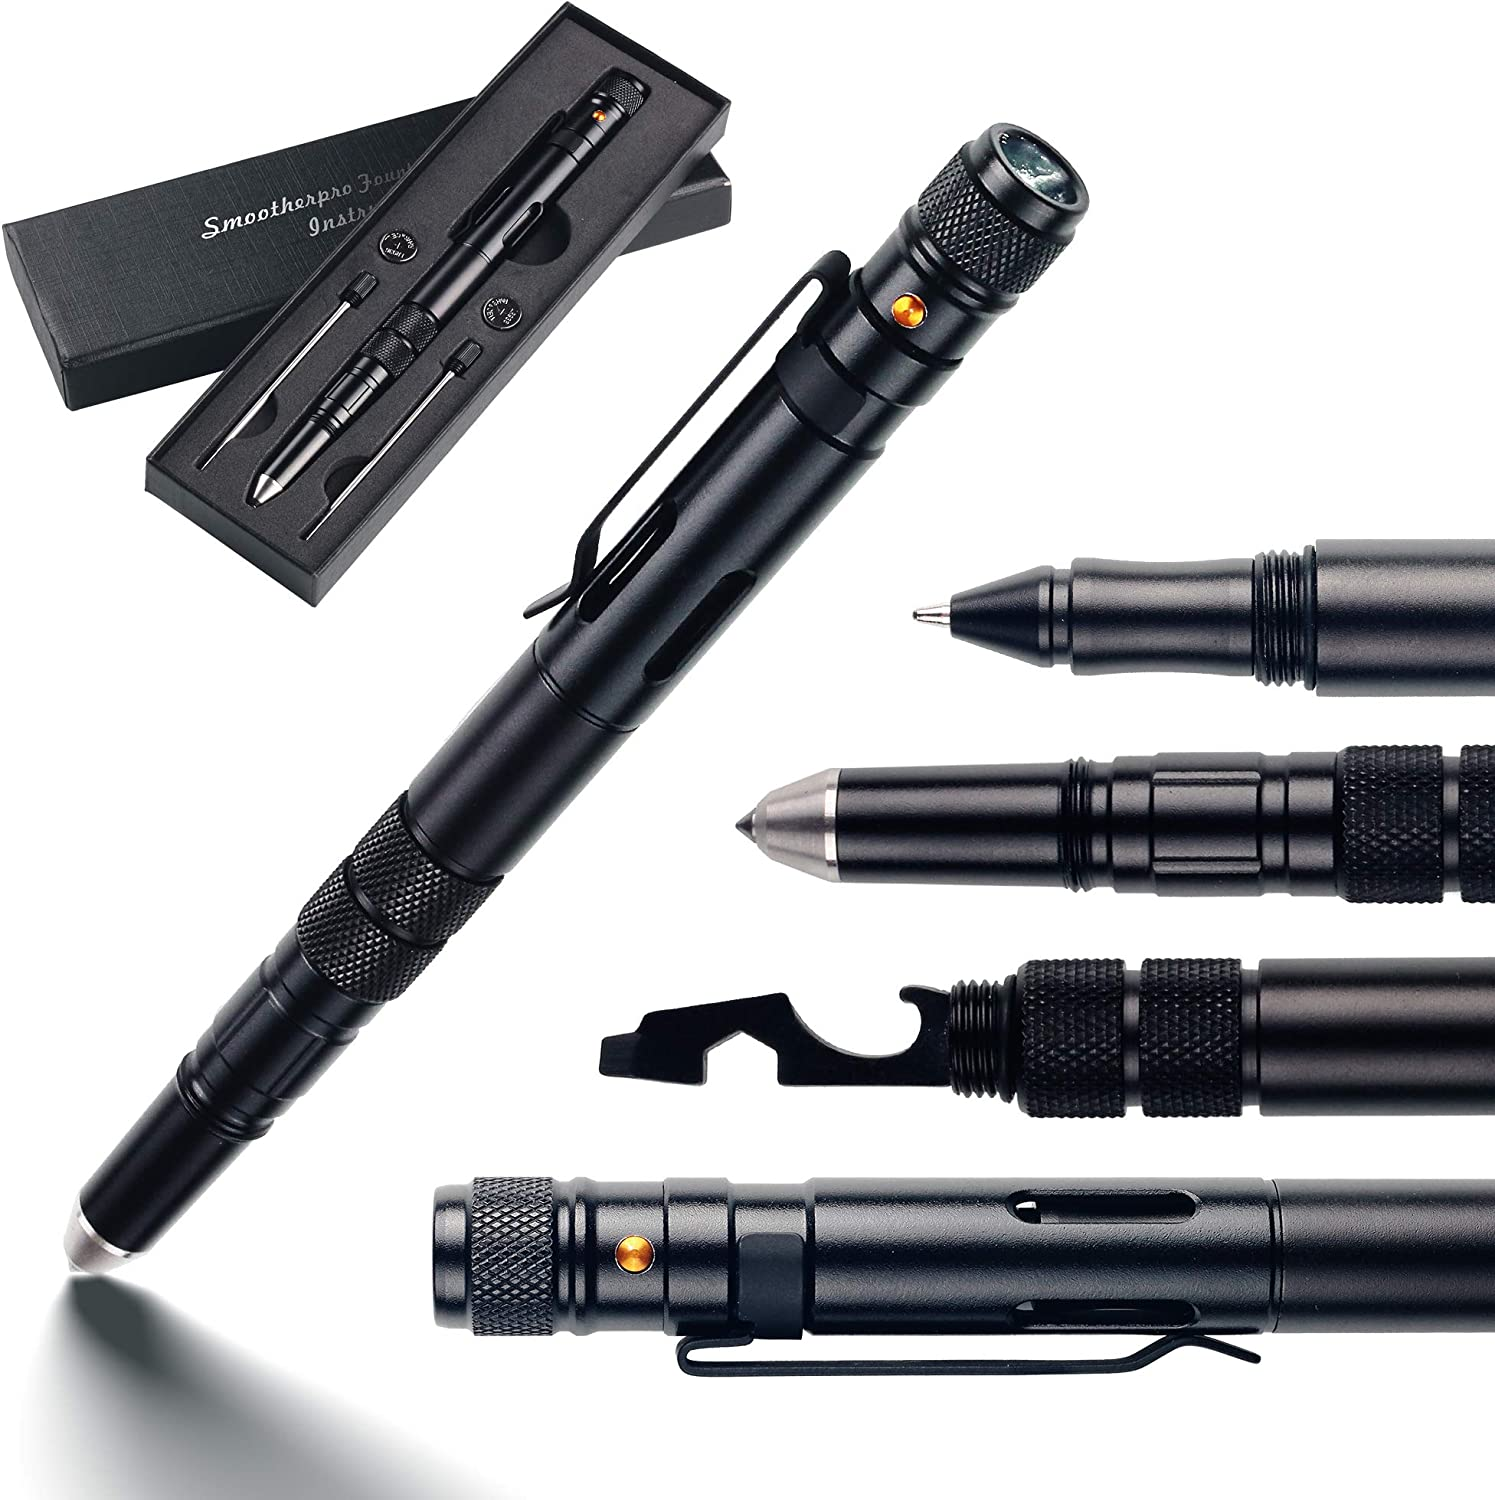 TP550 SMOOTHERPRO Tactical Pen with LED Flashlight Tungsten Tip Bottle Opener Hex Wrench and Screwdriver for SWAT Police Military EDC Color Black